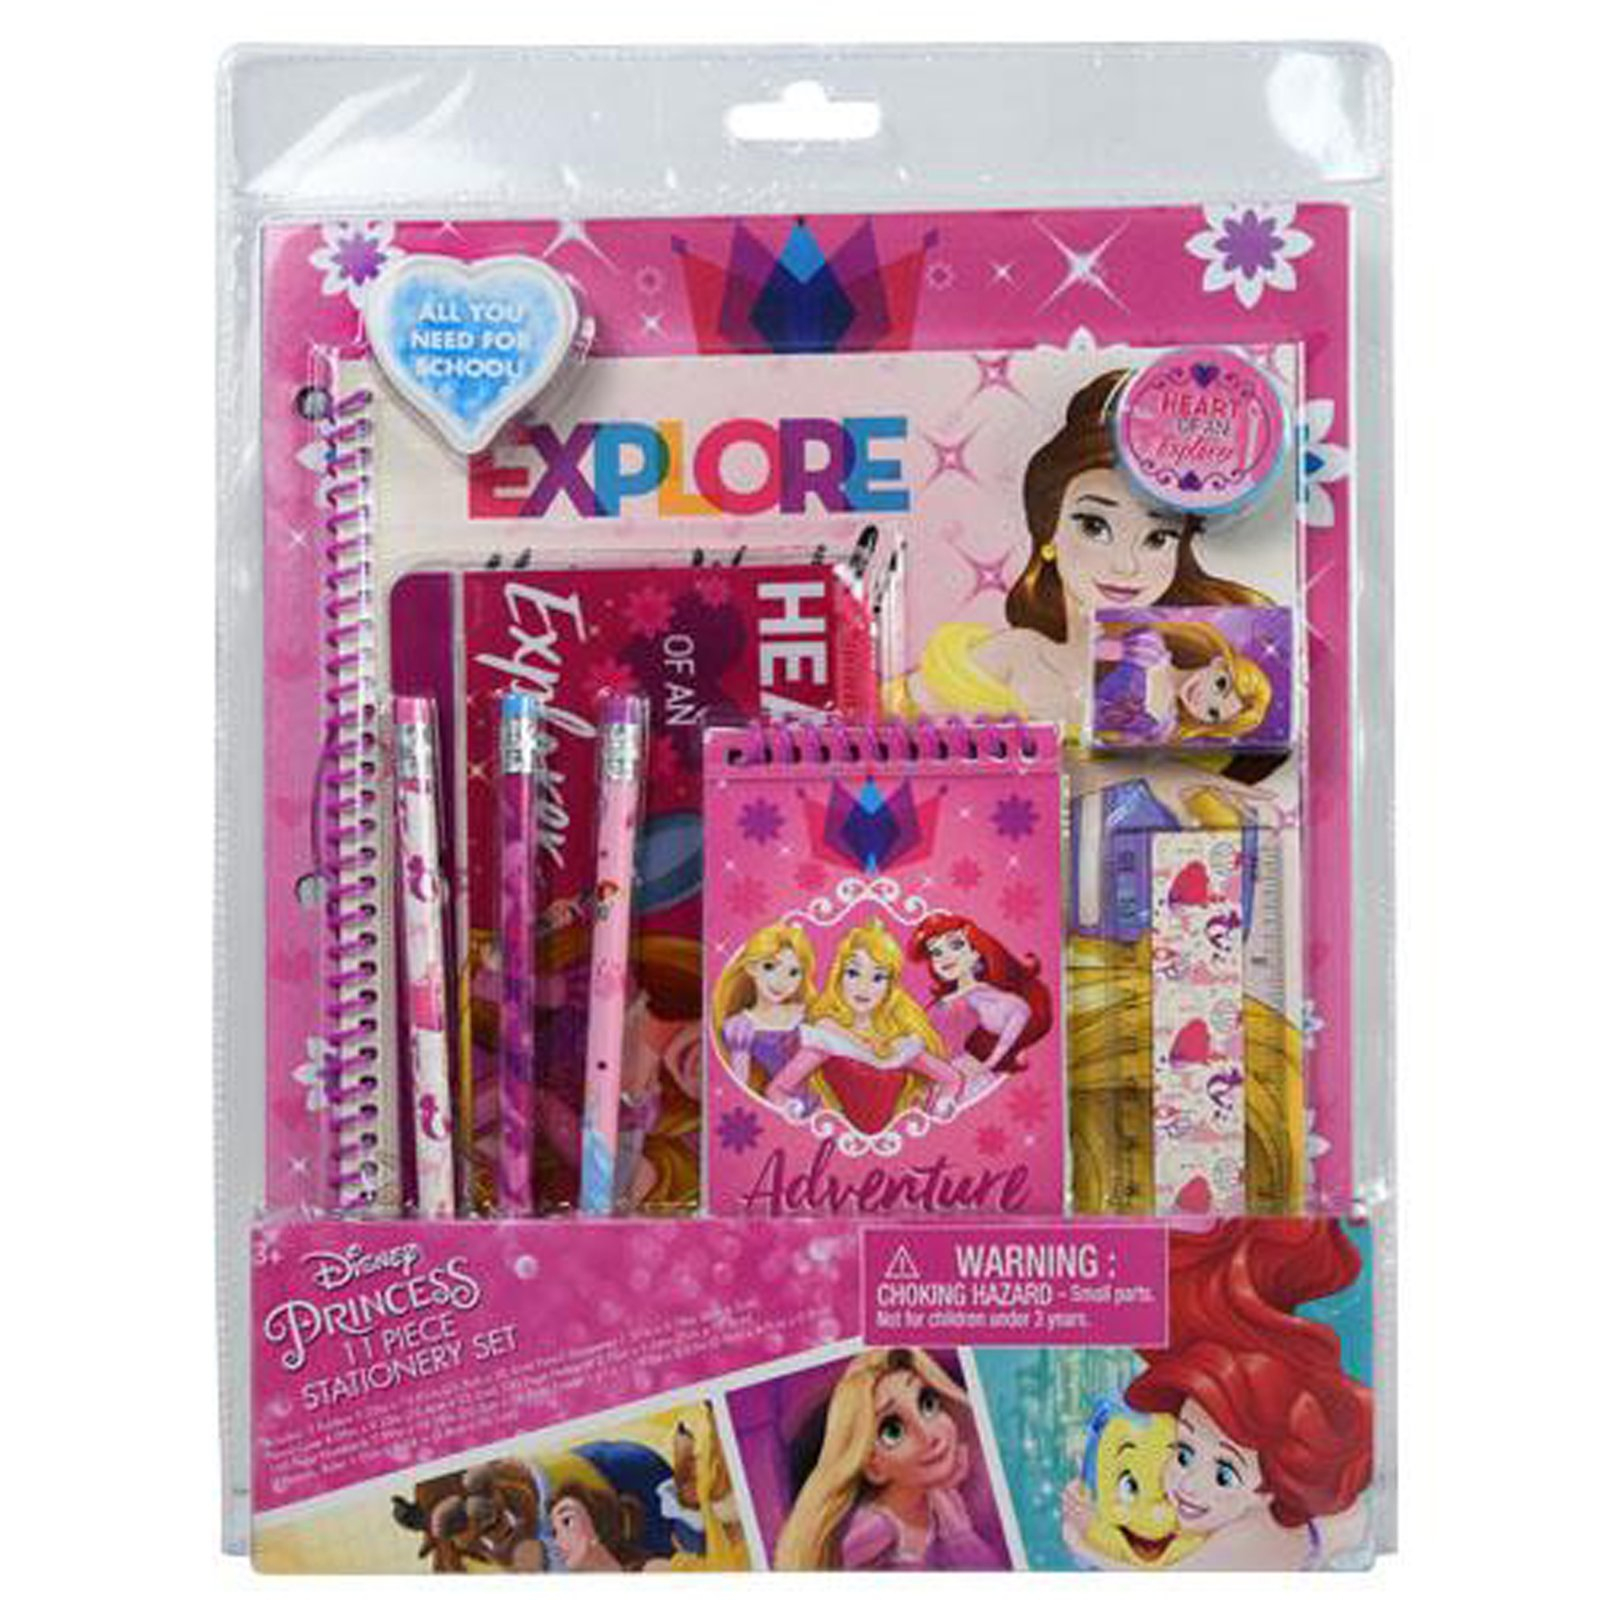 Disney Princess Girls Stationery Set Folders Pencils Notepad Eraser 11 Pieces